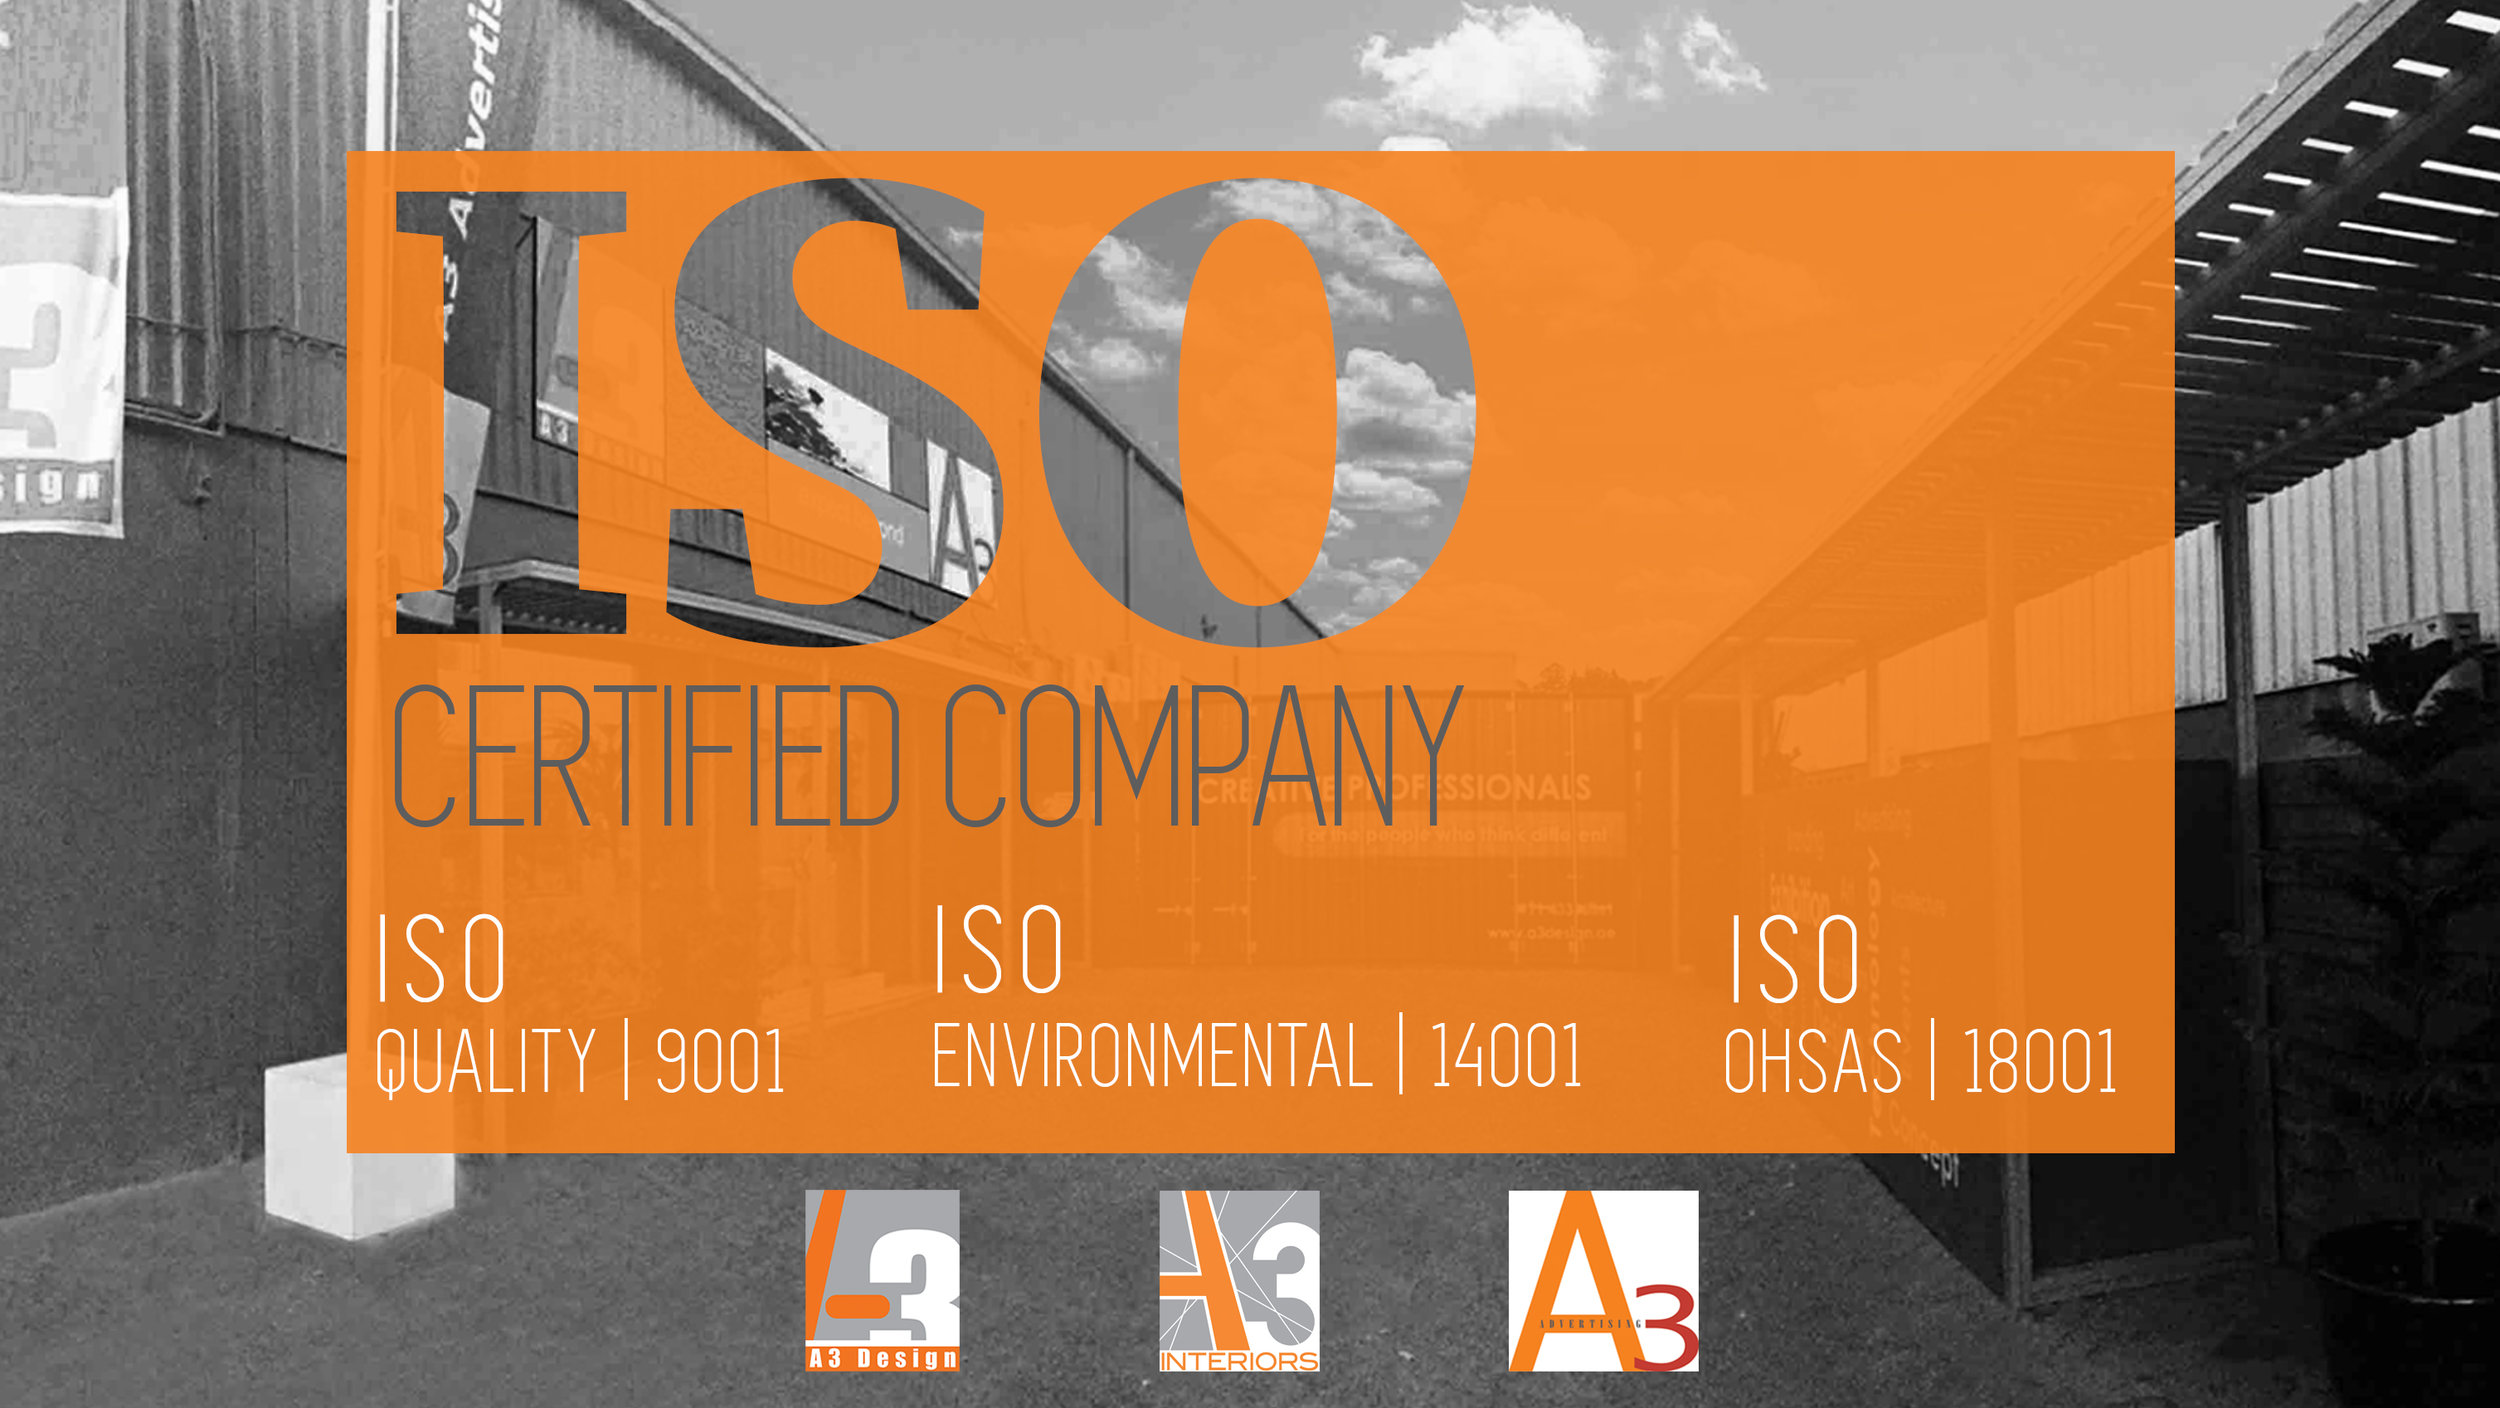 ISO CERTIFIED COMPANY website.jpg